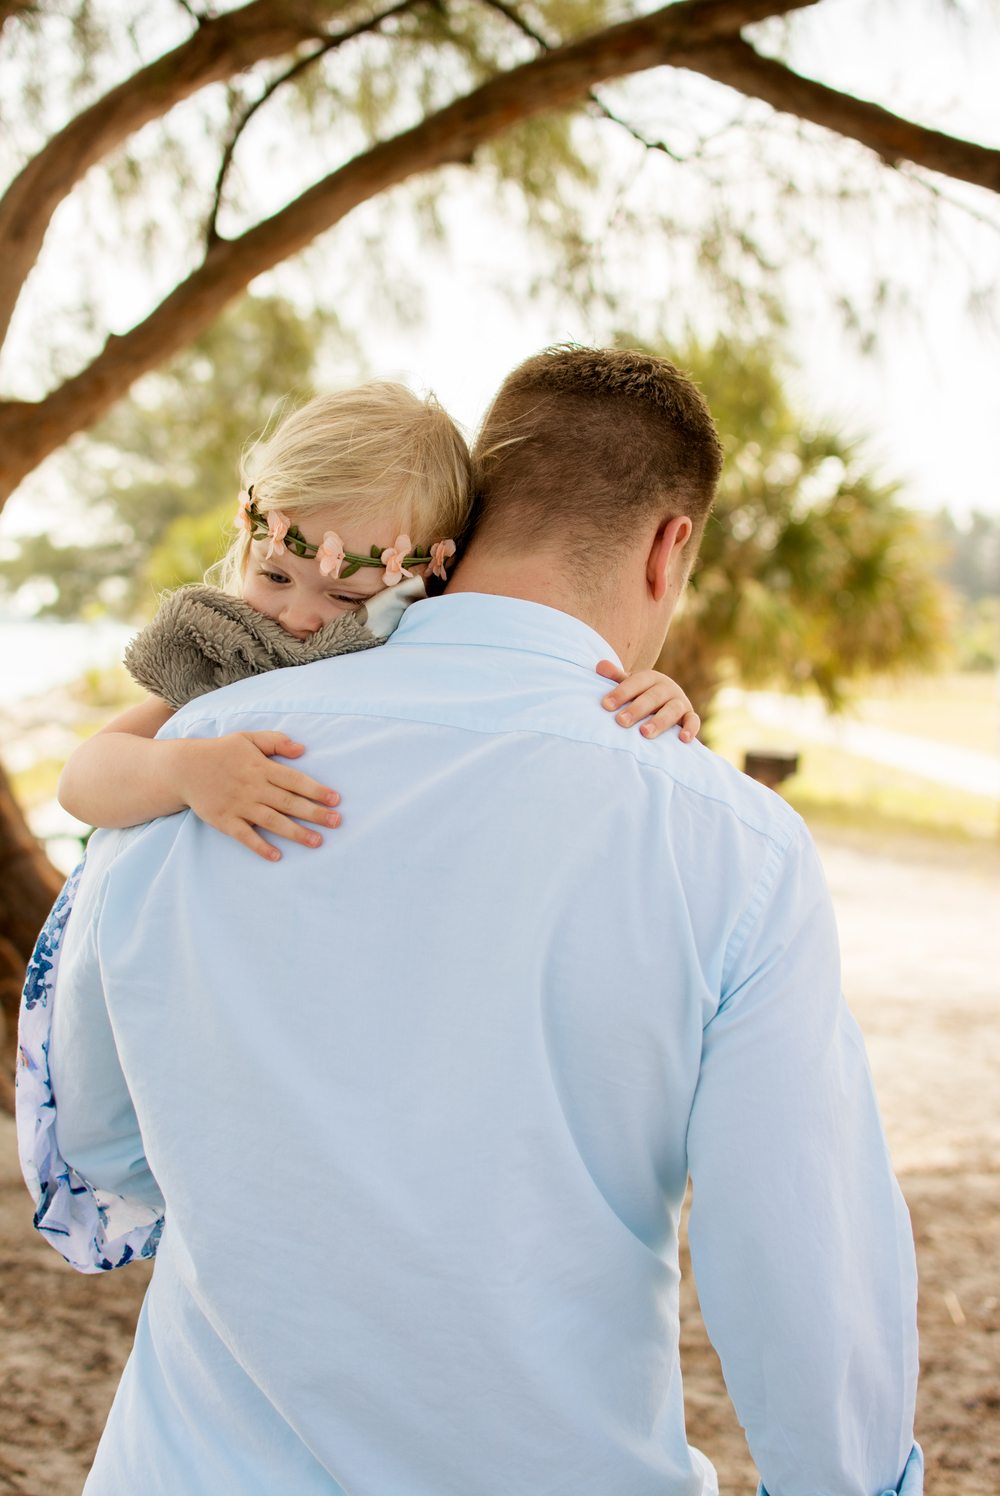 Carlie-Chew-Photography-Family-Photography-Tampa-Florida